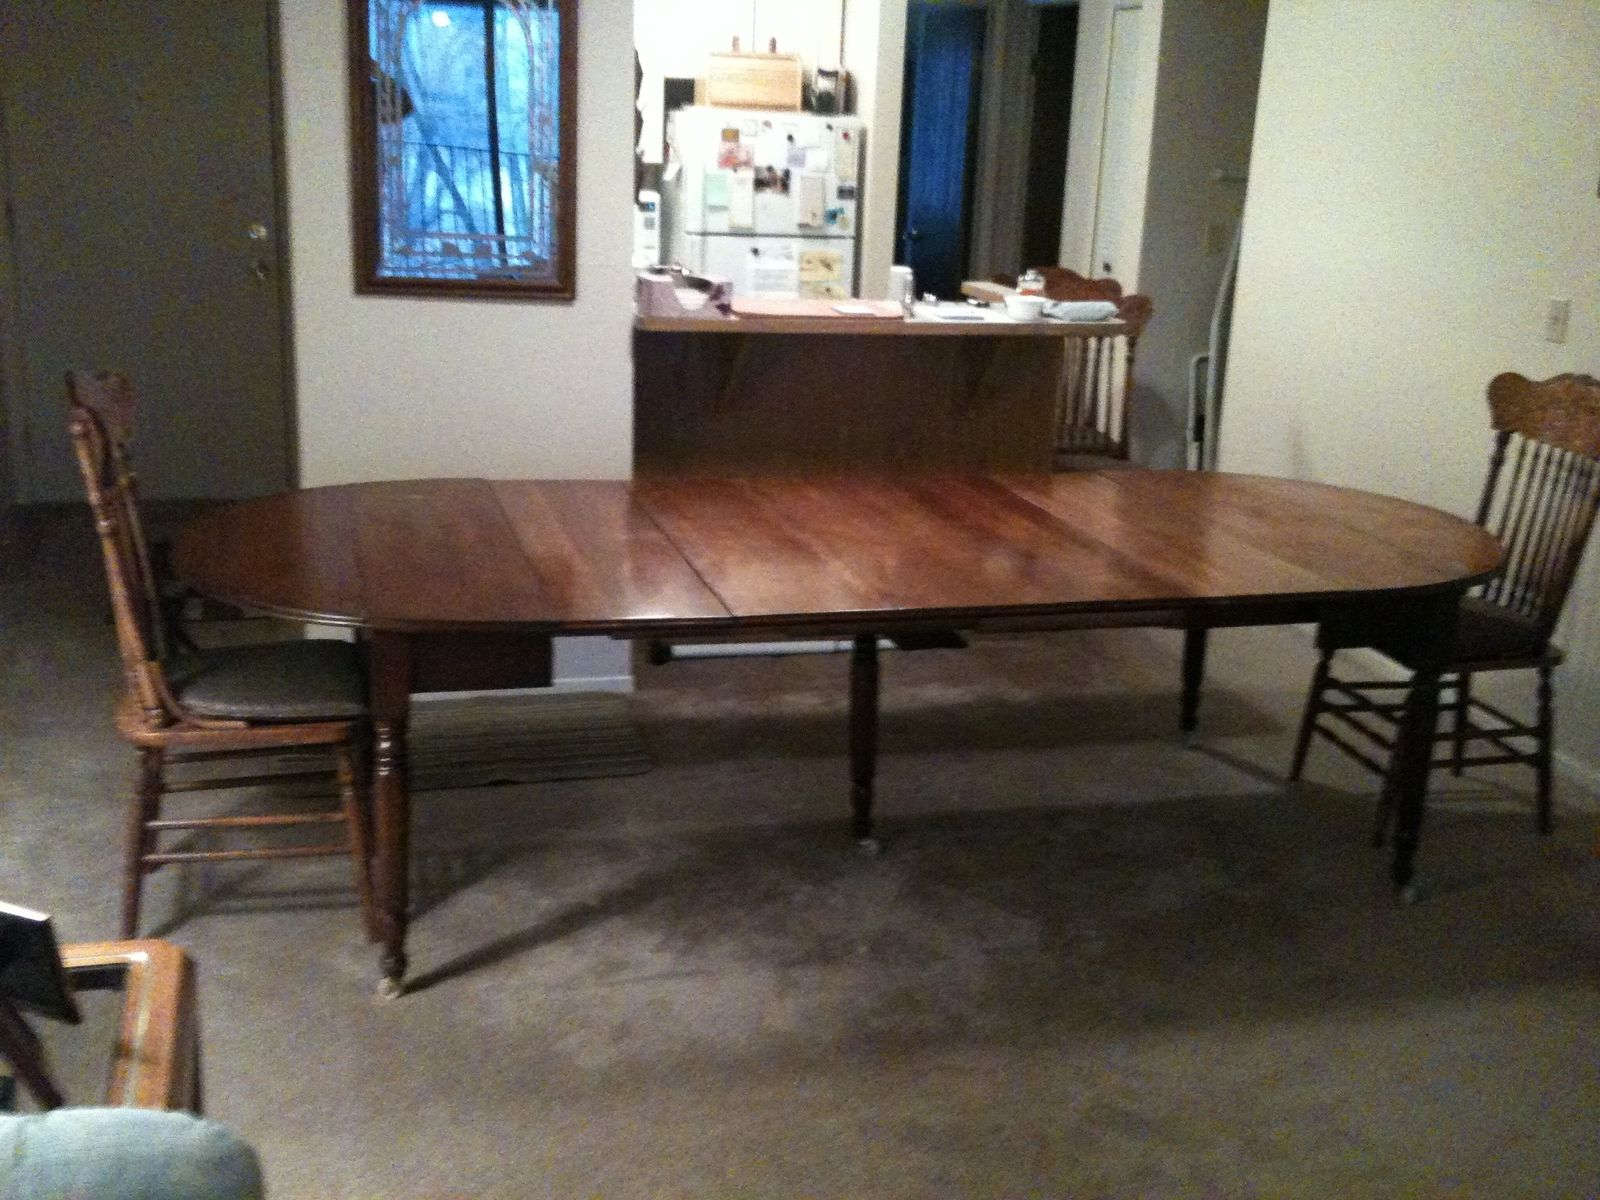 Custom Replacement Of Five 5 Table Leaves To A Family Antique Dining By The Plane Edge Llc Custommade